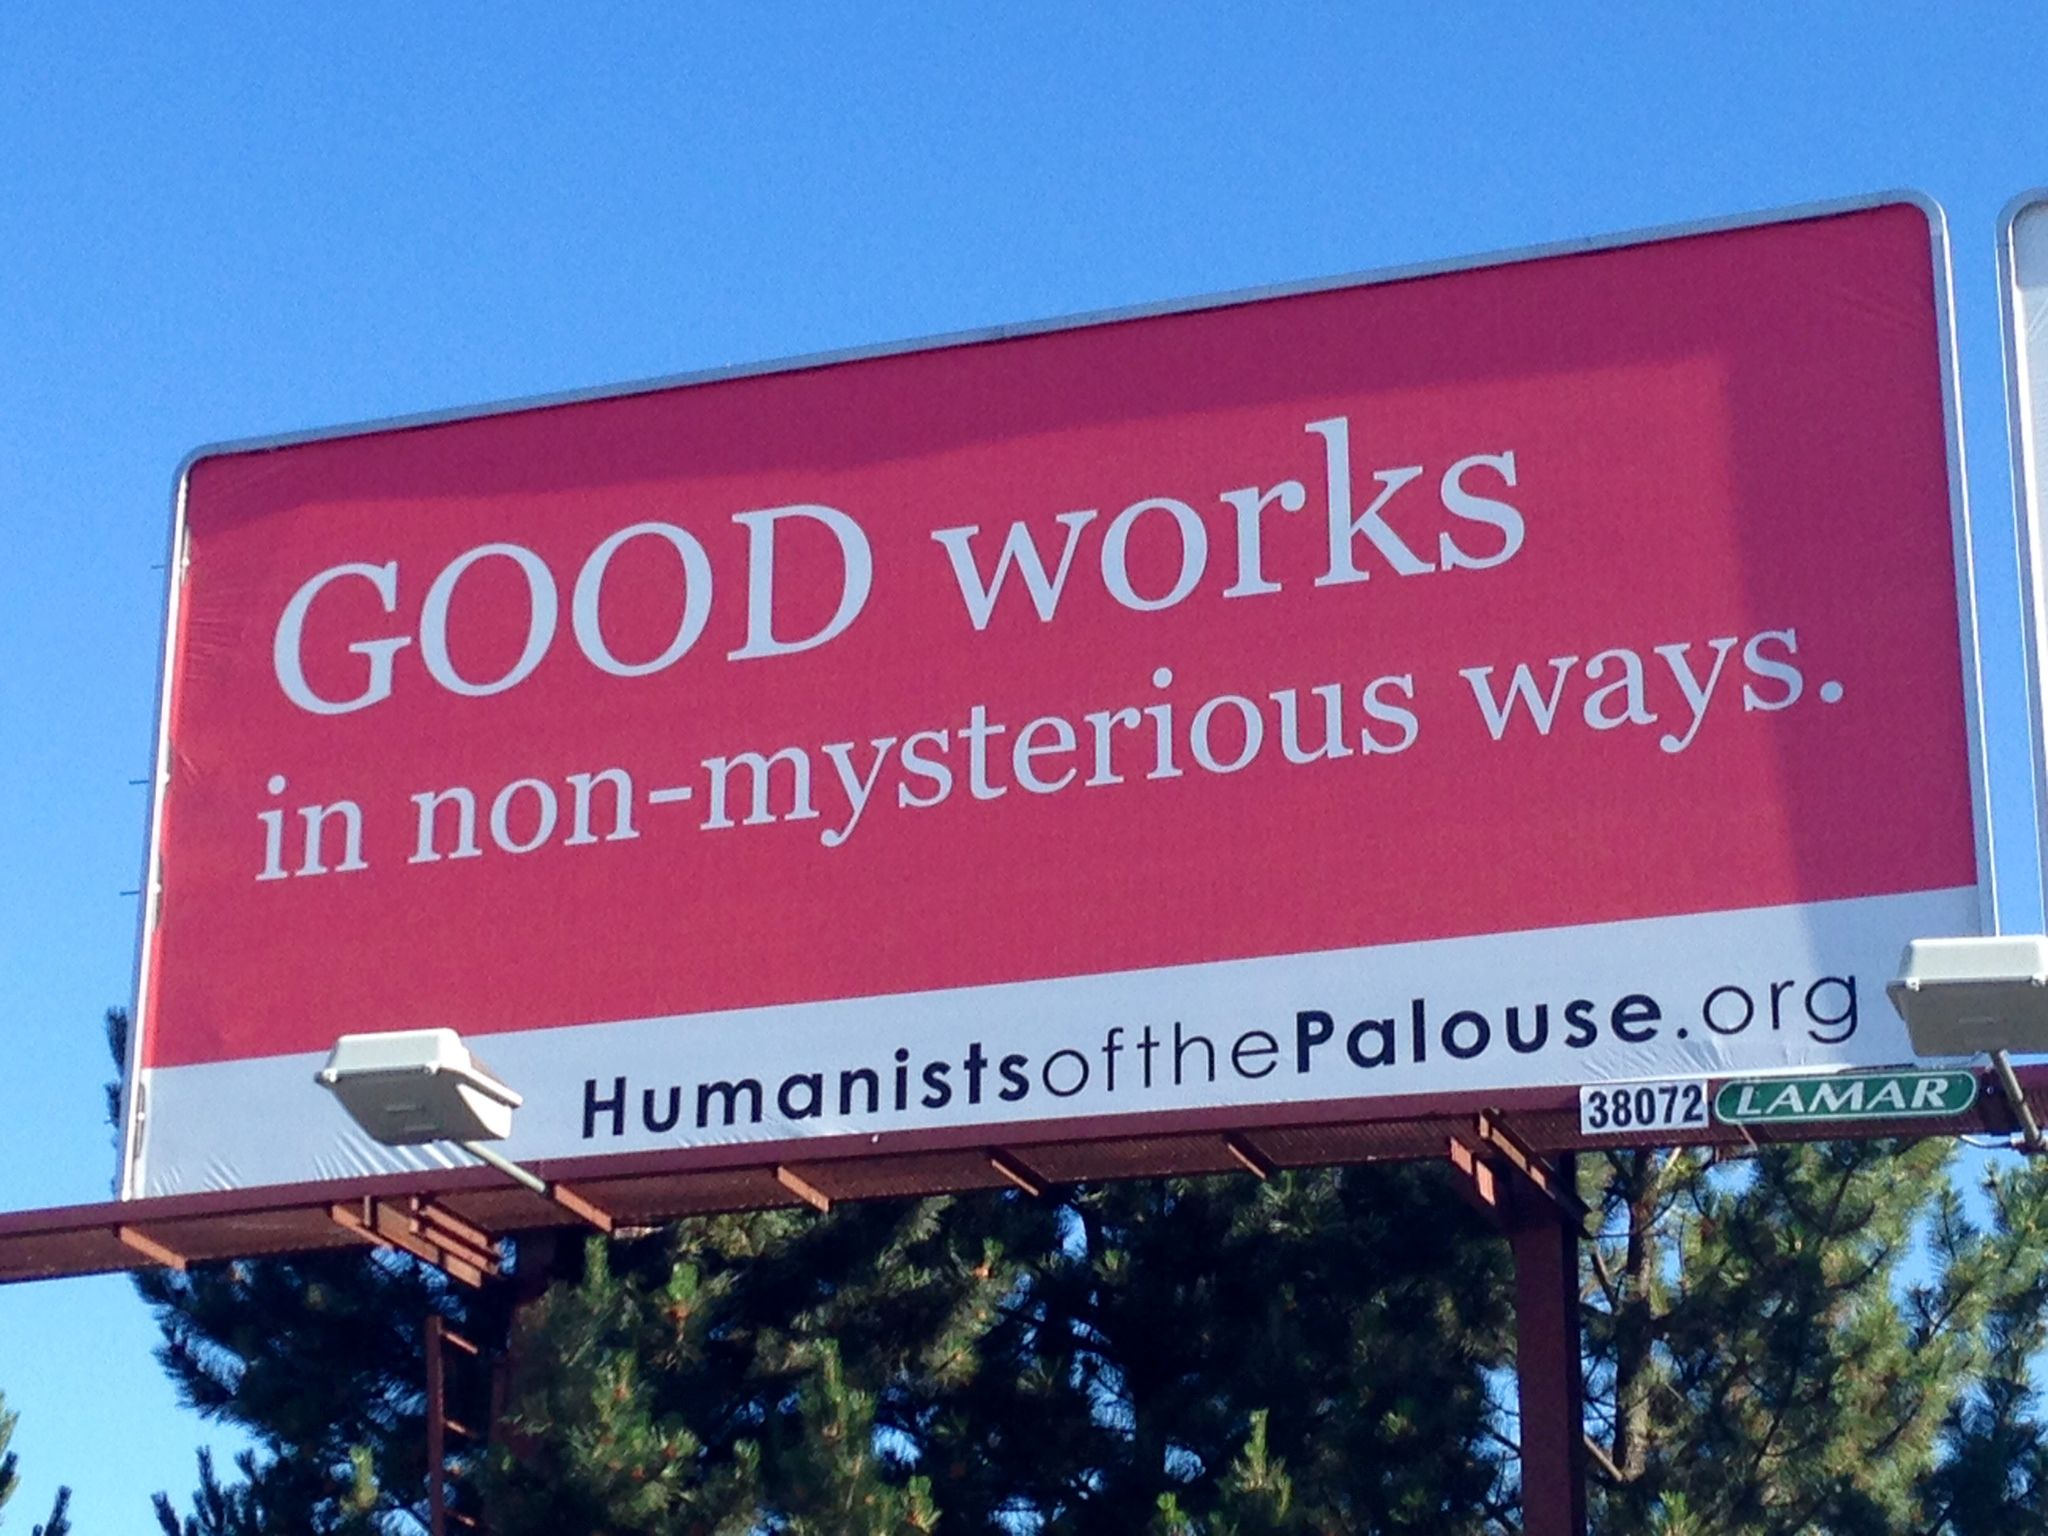 """Latest Godless Billboard in the Palouse Emphasizes """"Good Works in Non-Mysterious Ways"""""""